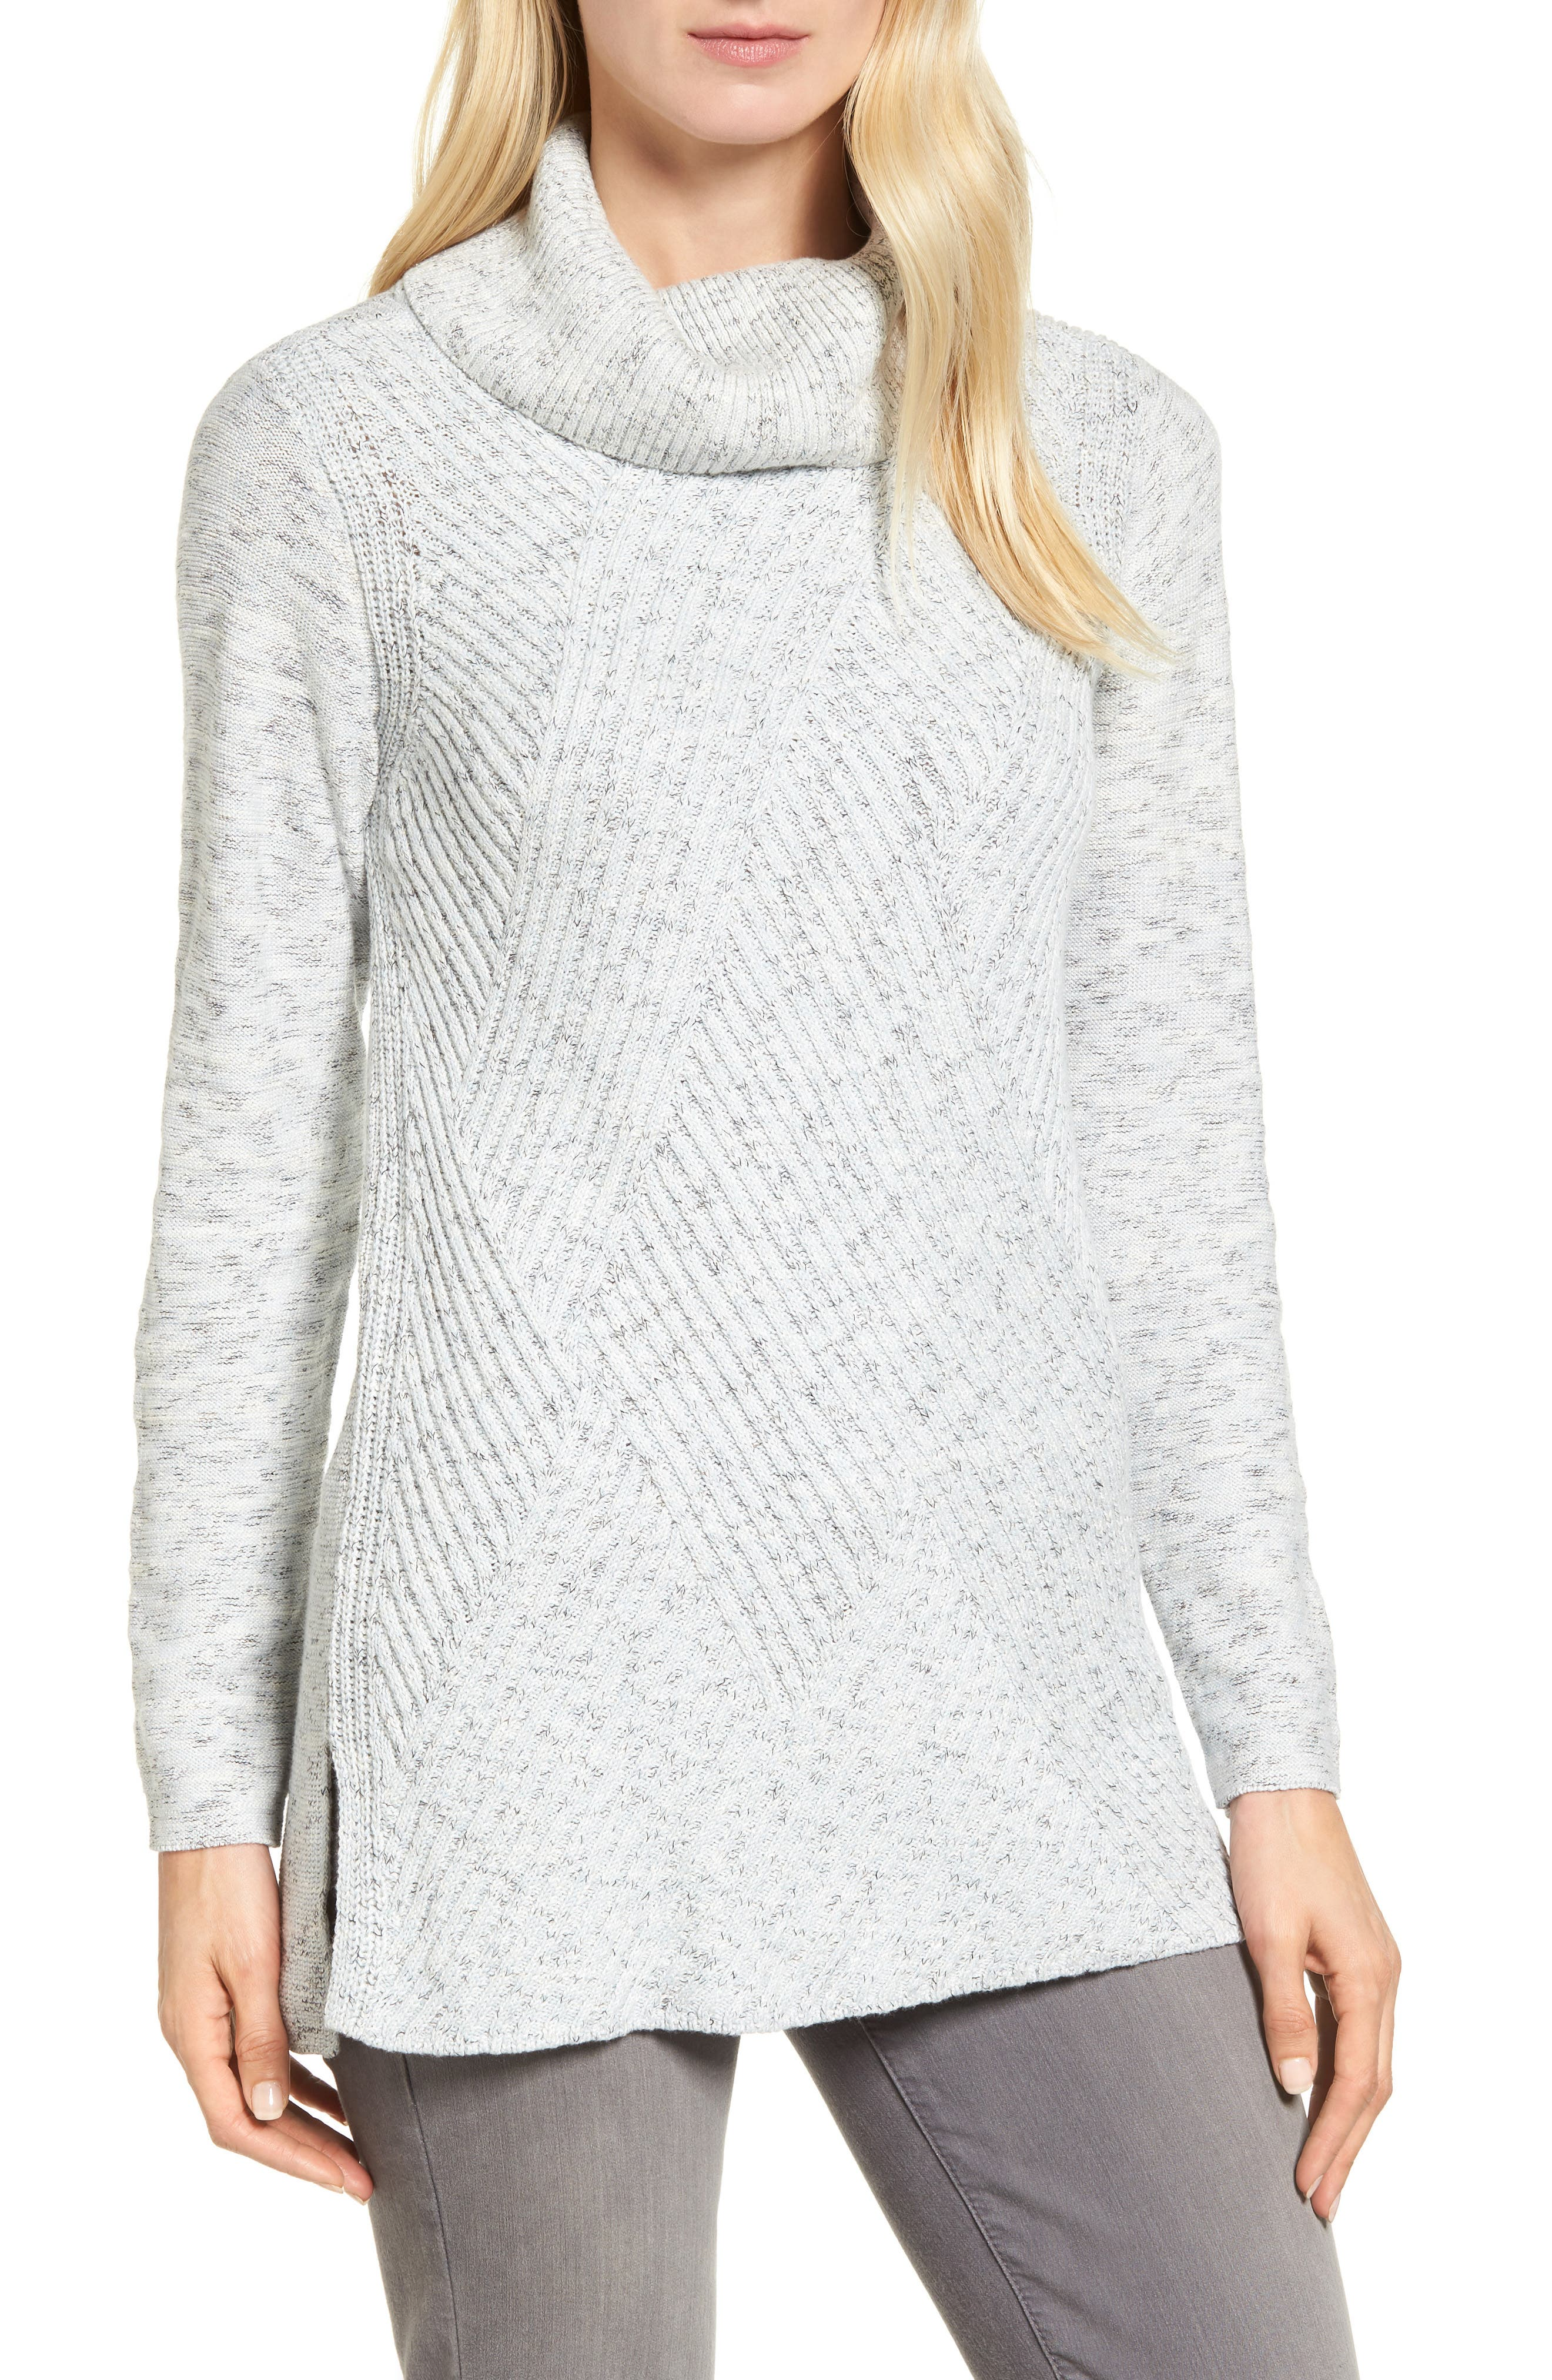 NIC+ZOE North Star Turtleneck Tunic (Regular & Petite)